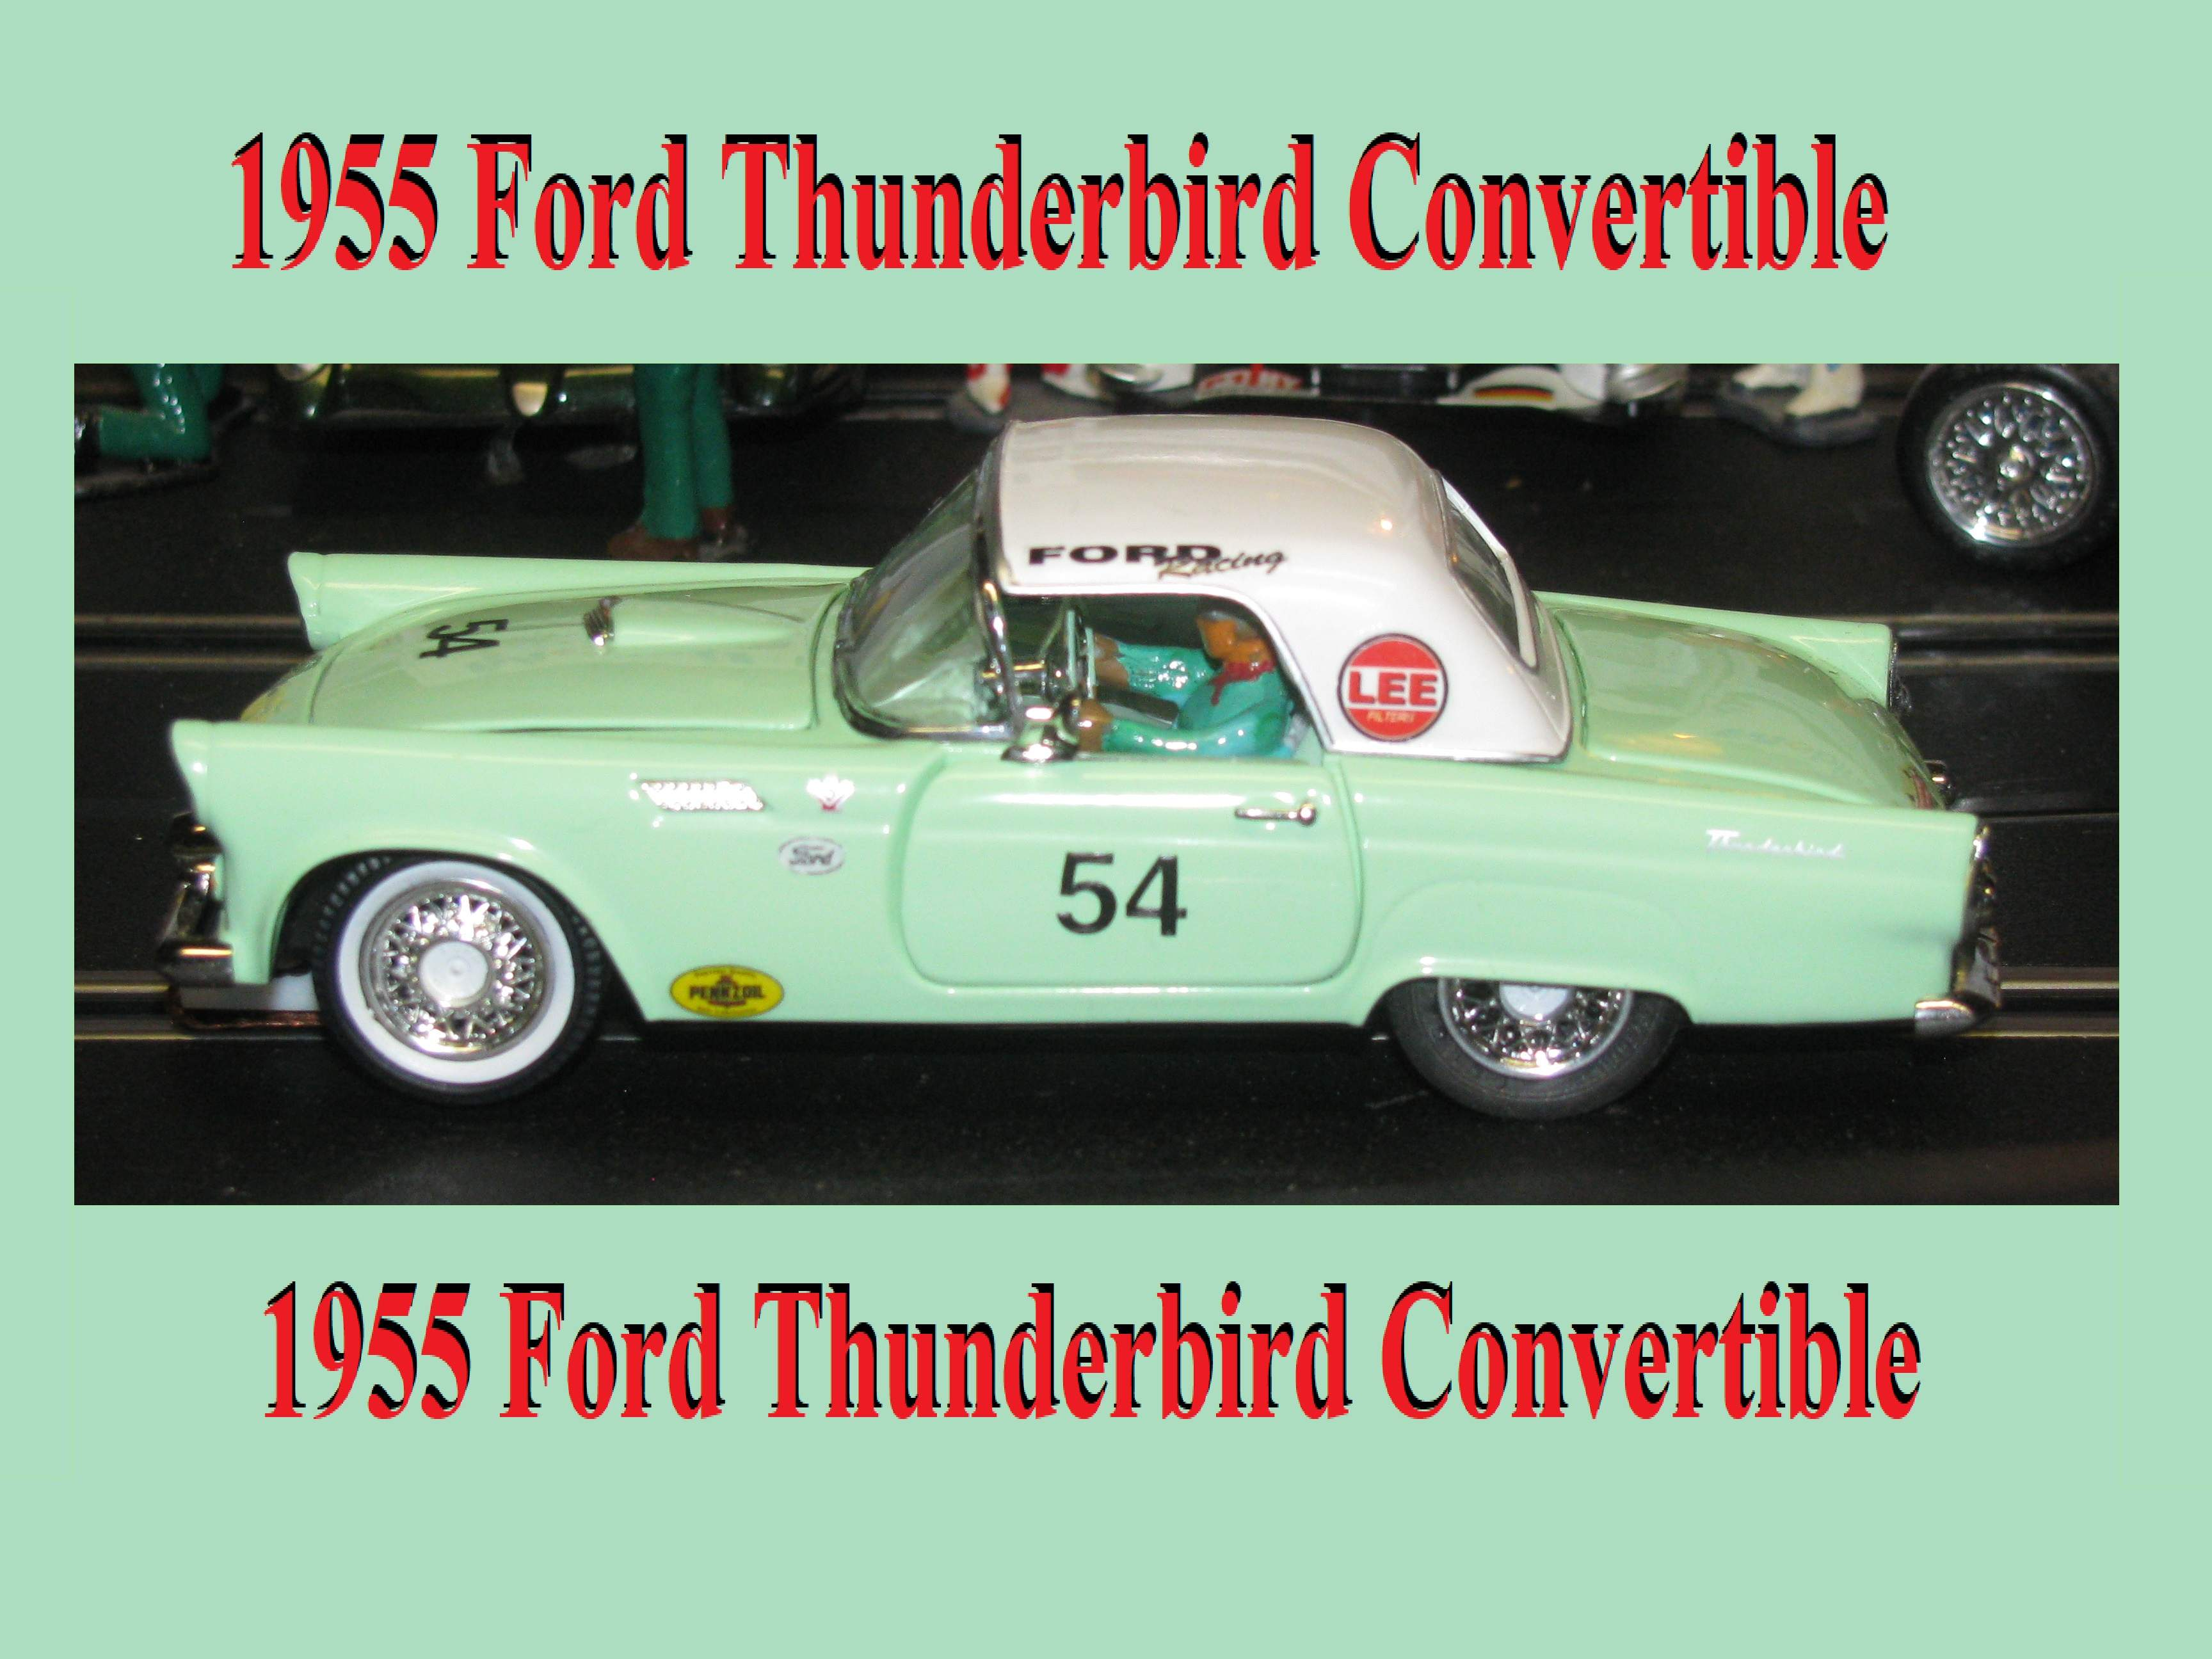 * Sale * Ford Thunderbird Convertible Slot Car 1:32 Scale in Springmist Green with Die Cast Body – Car #54